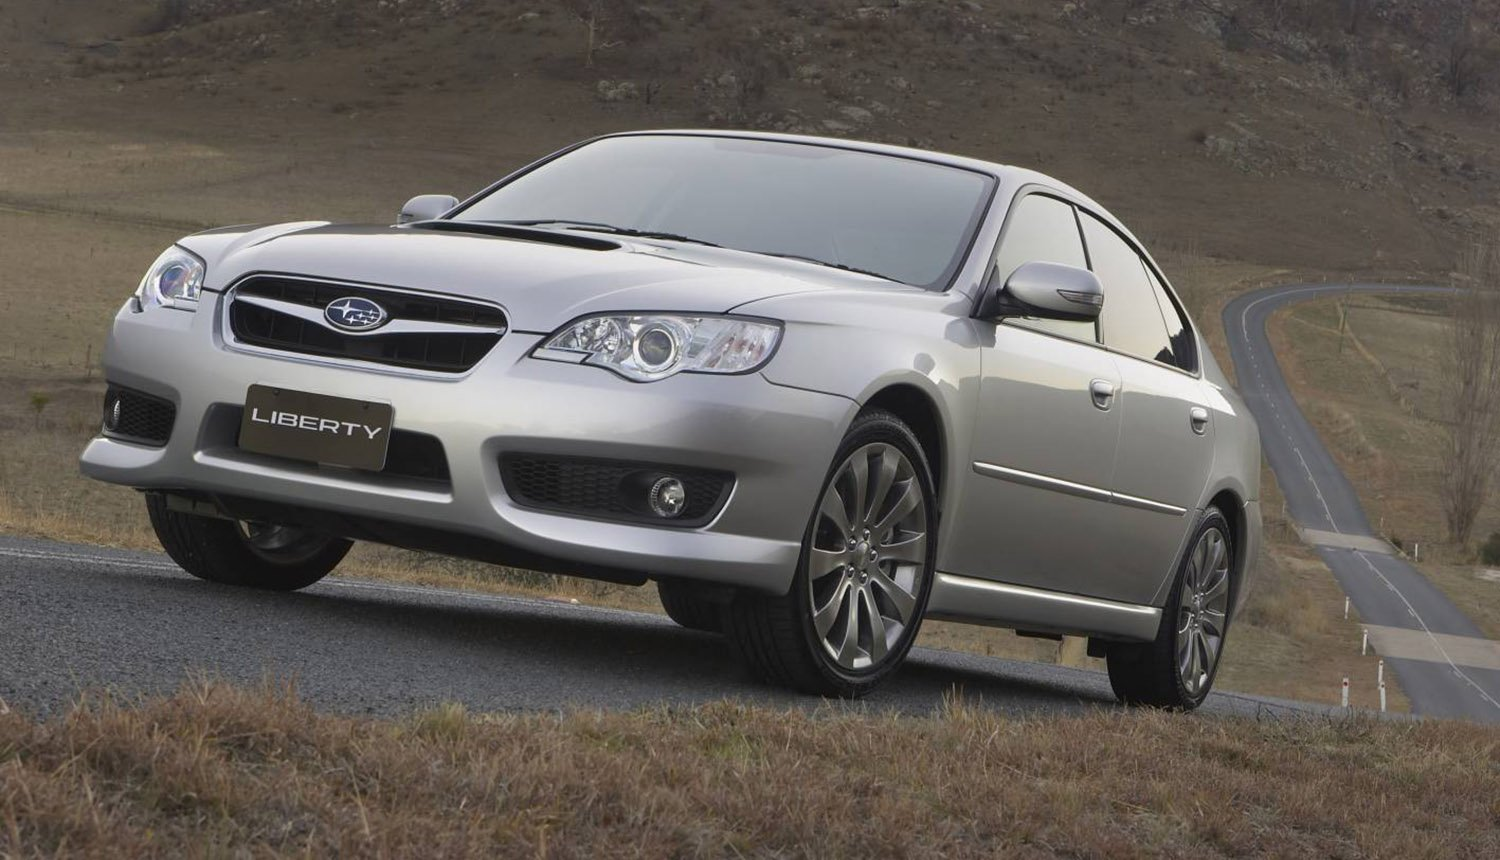 Subaru Liberty Gt Impreza Wrx Sti And Forester Xt